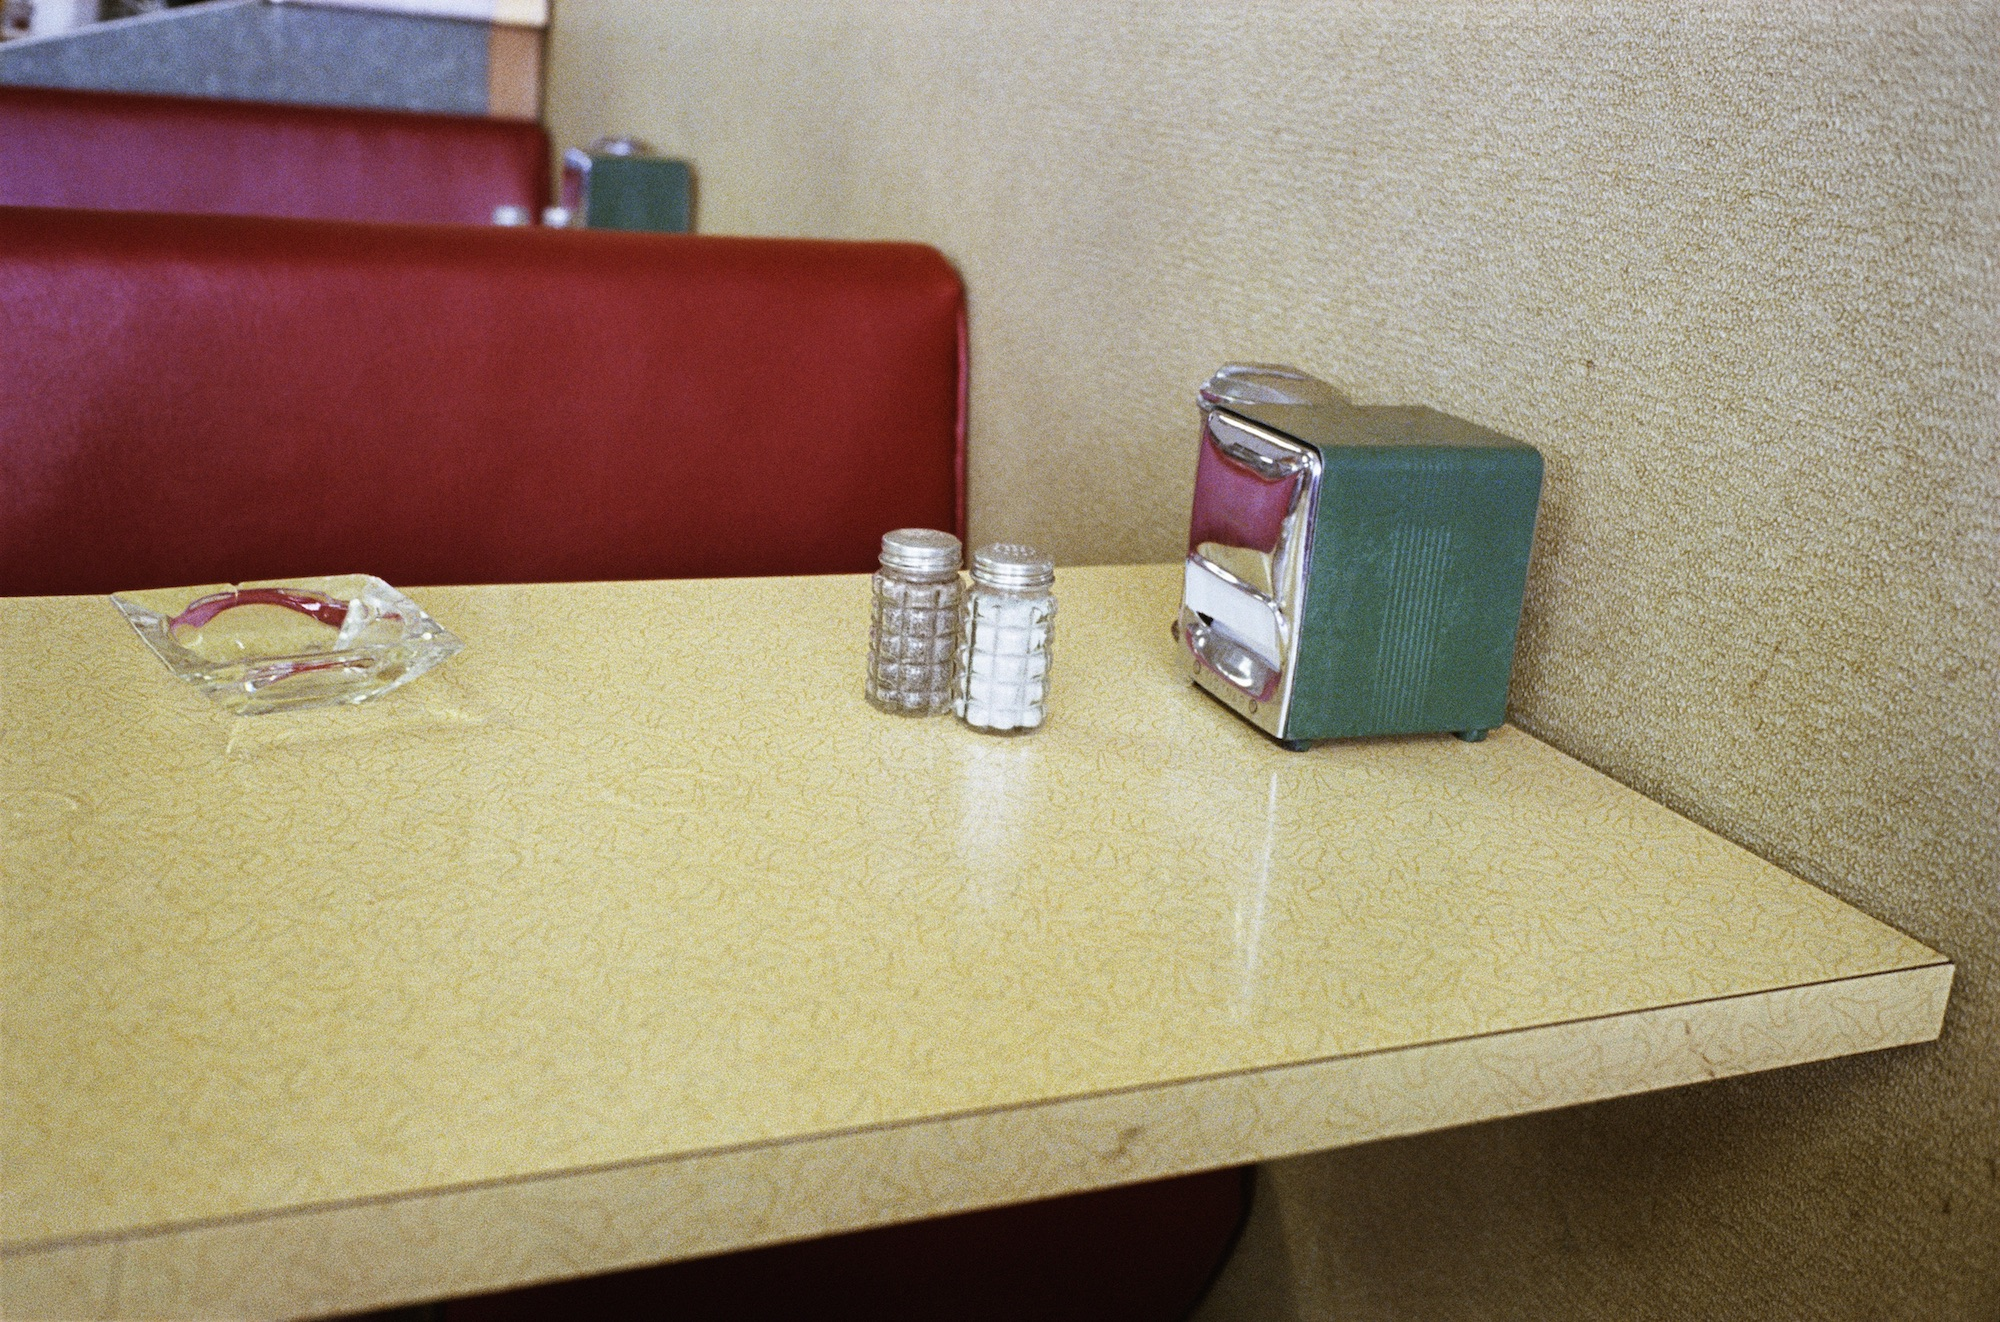 William Eggleston, Untitled, c.1983 - 1986 © Eggleston Artistic Trust. Courtesy Eggleston Artistic Trust and David Zwirner